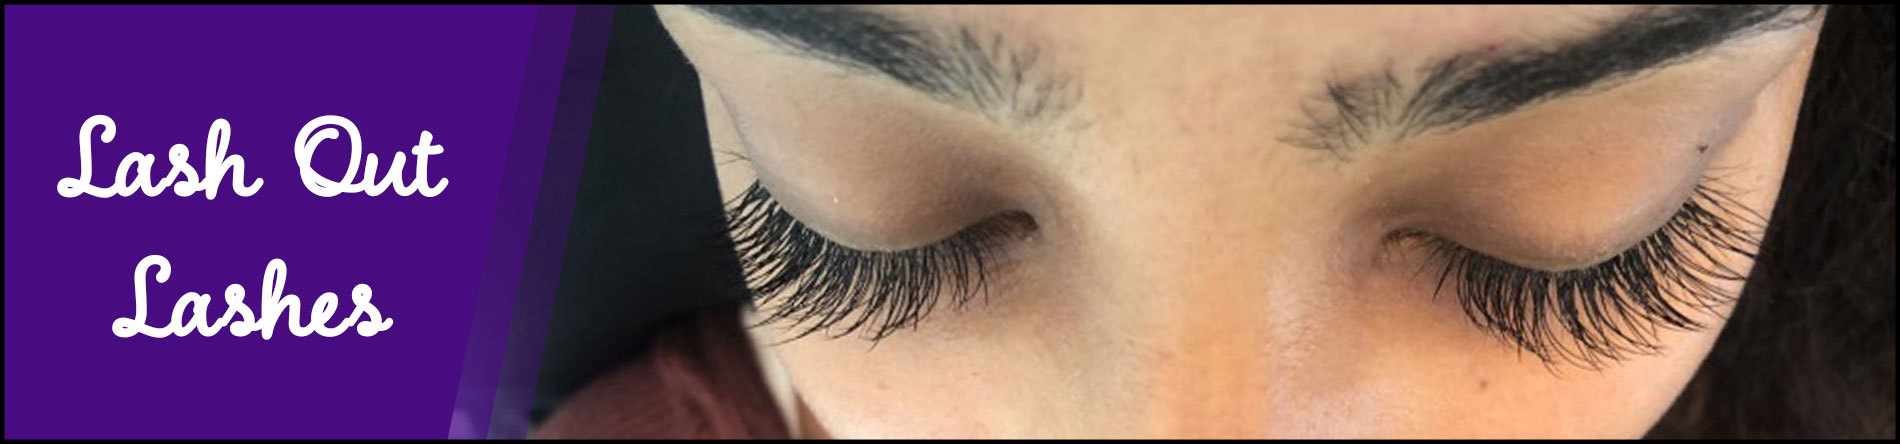 Lash Out Lashes Is An Eyelash Studio And Spa In New York Ny